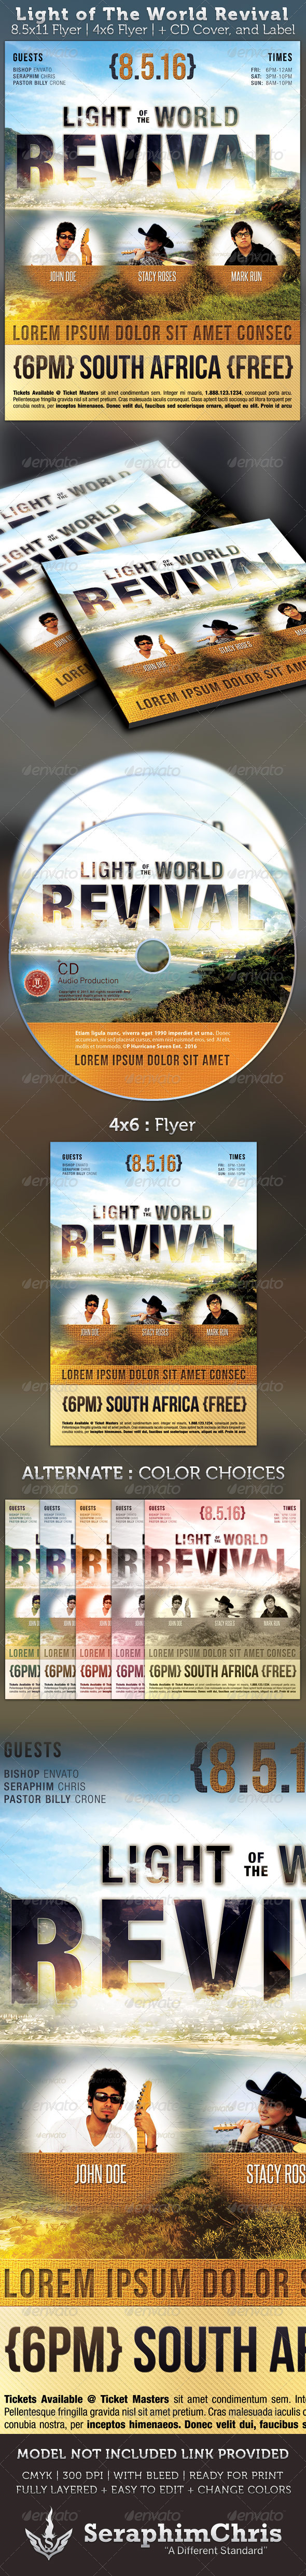 free church revival flyer template - examples of church revival flyers